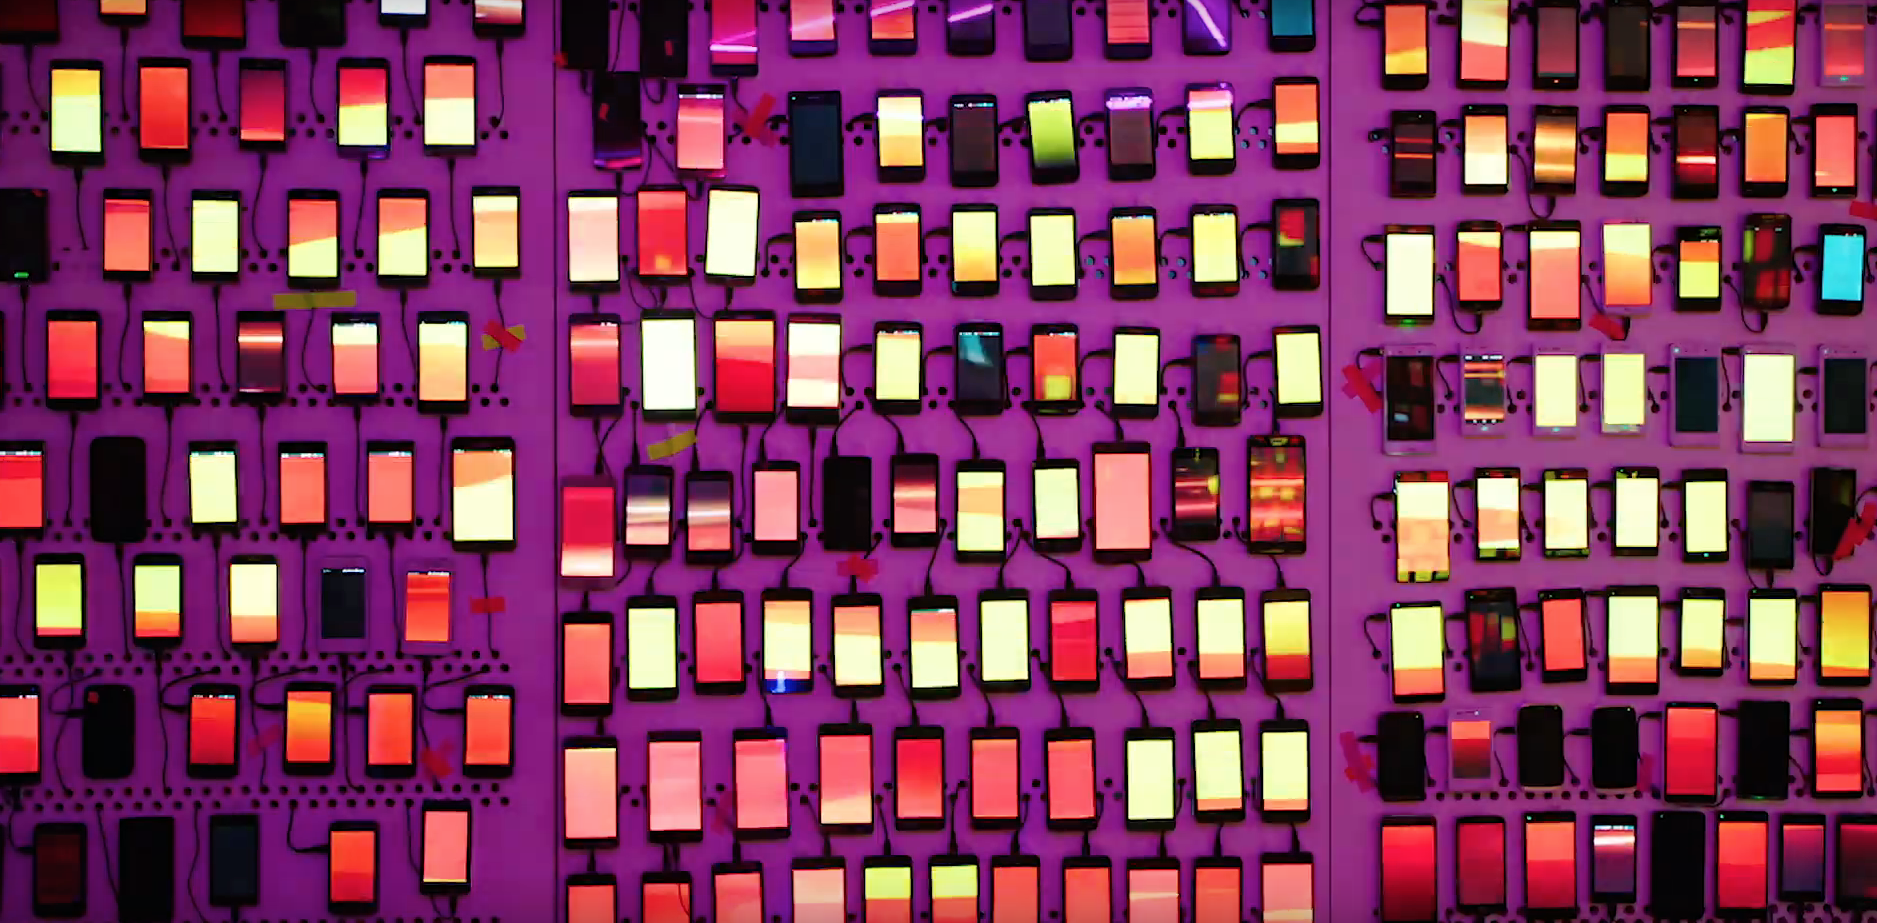 Stop Scrolling and Start Partying! Desperados Create Amazing Light Display Using Smartphones